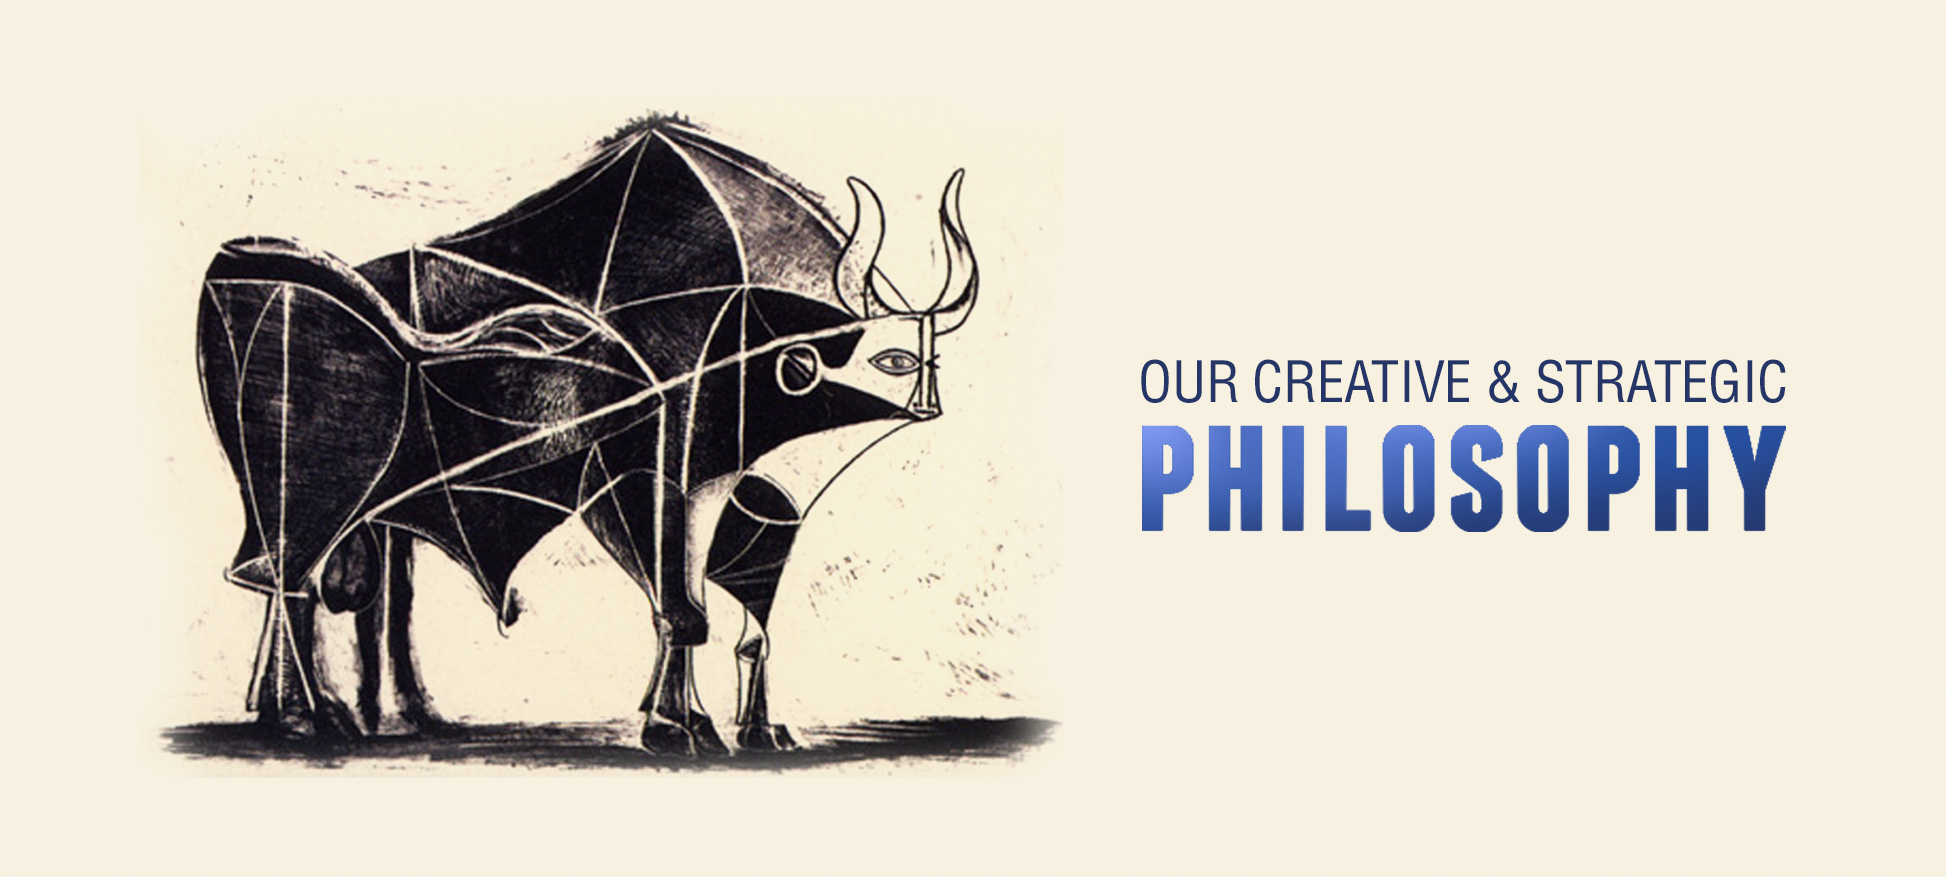 devito_about-philosophy_2